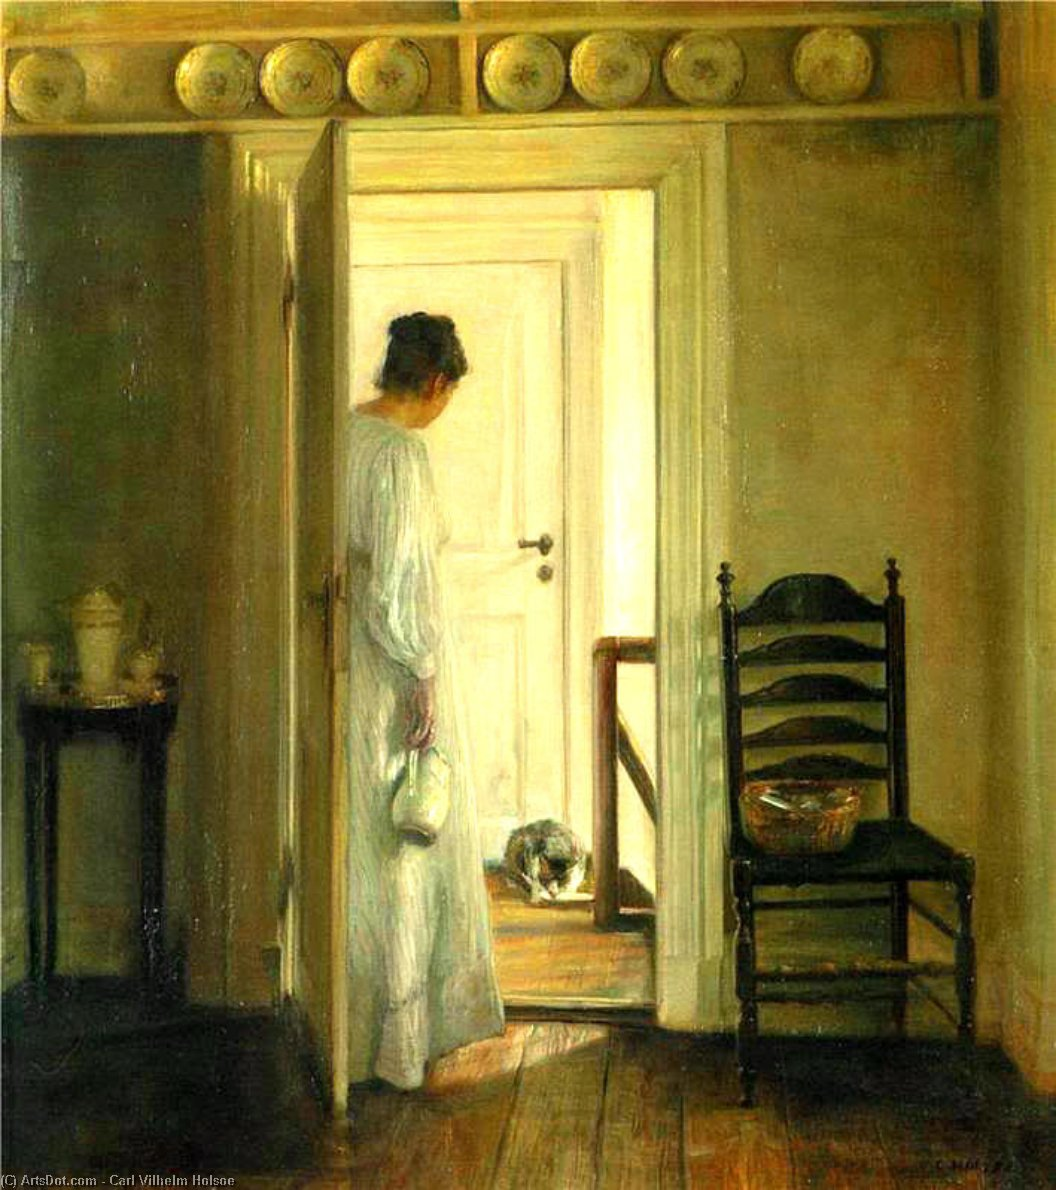 A Lady And A Cat Drinking Milk by Carl Vilhelm Holsoe (1863-1935, Denmark)